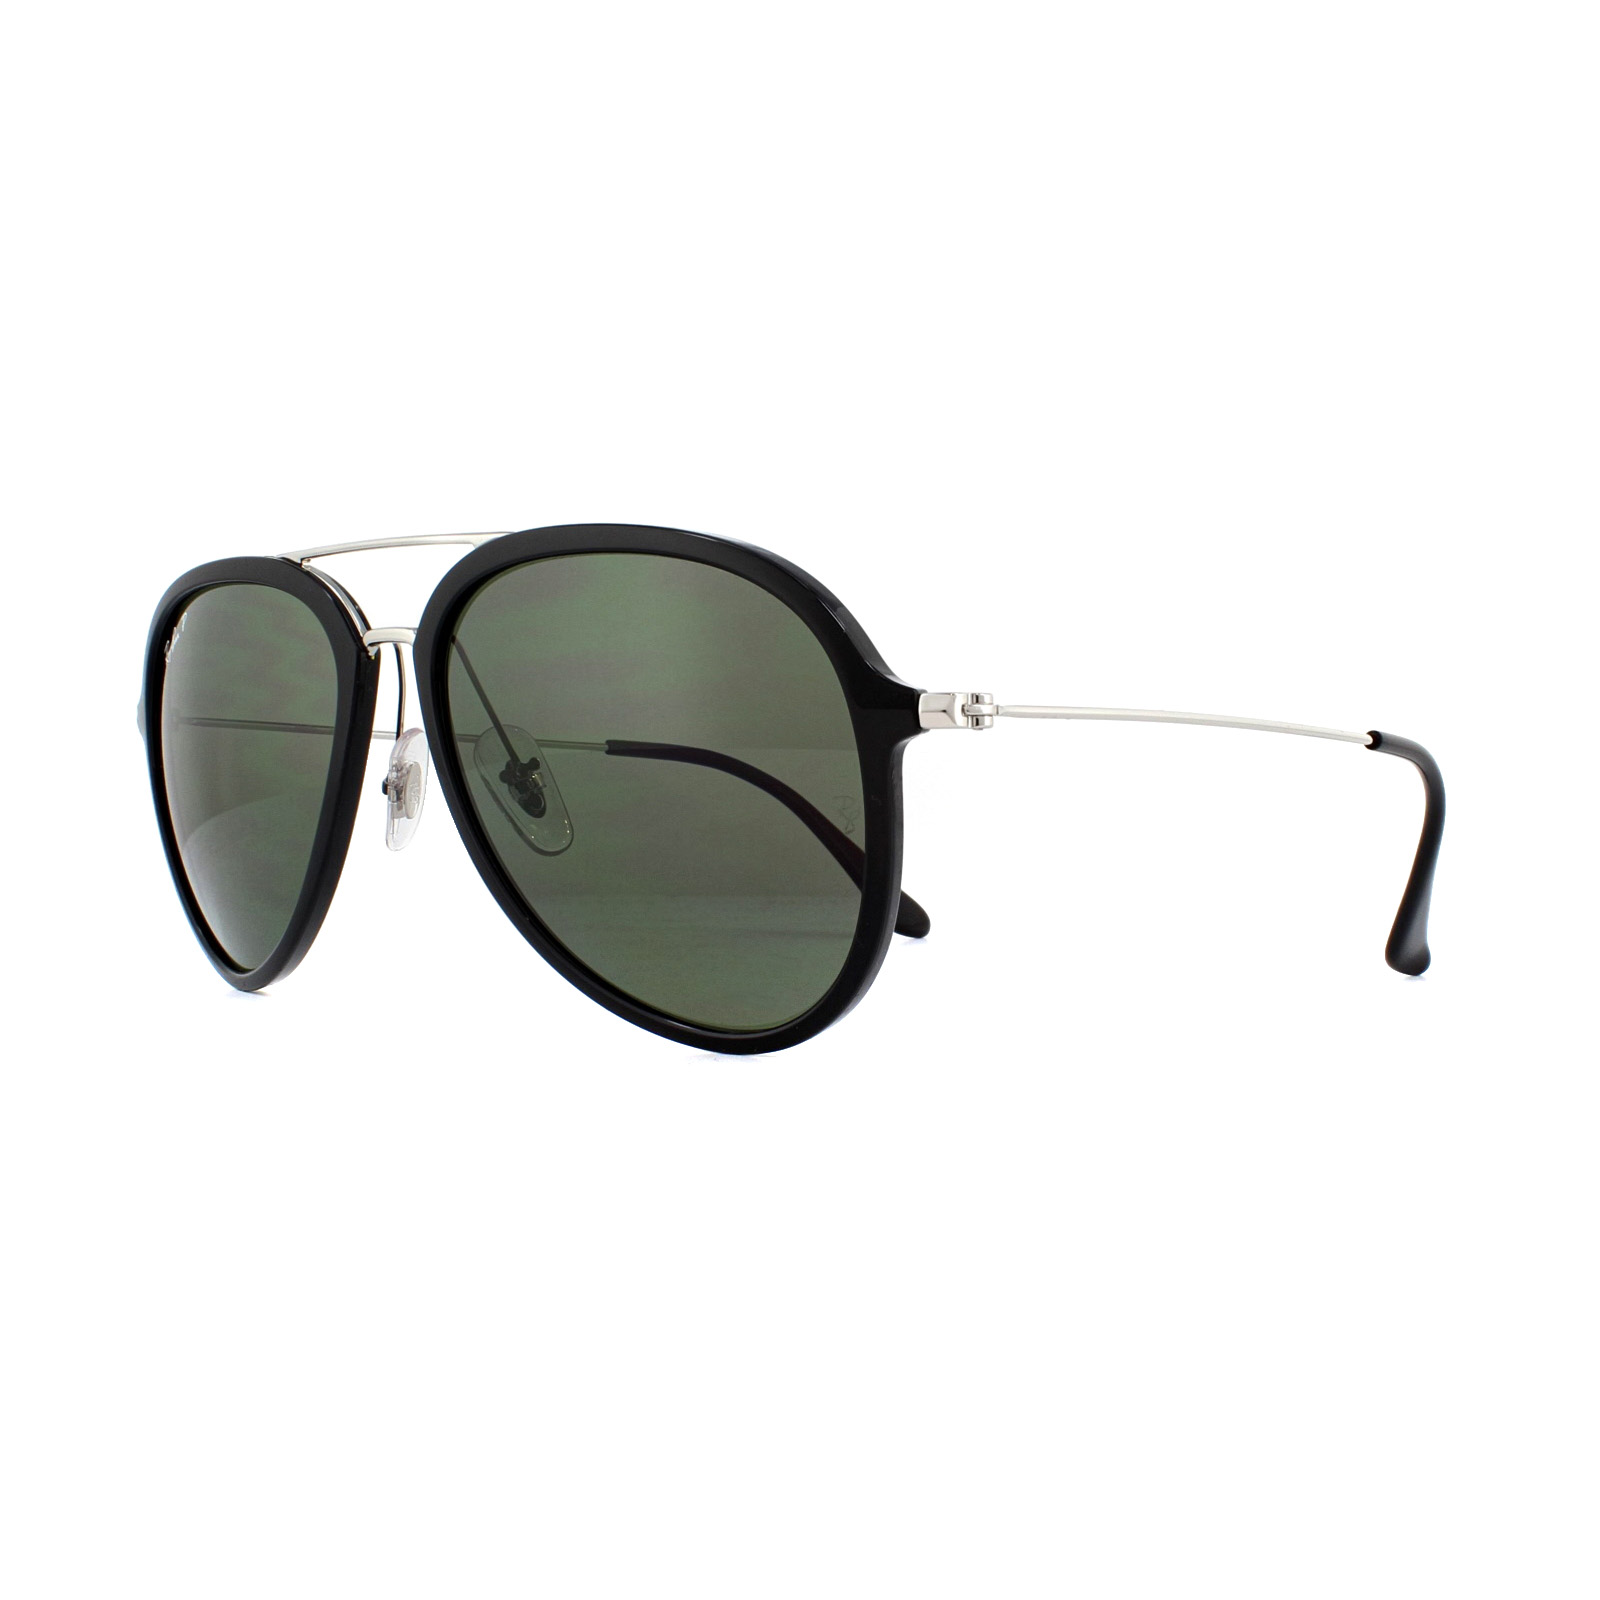 Cheap Ray-Ban RB4298 Sunglasses - Discounted Sunglasses 404595fcc2